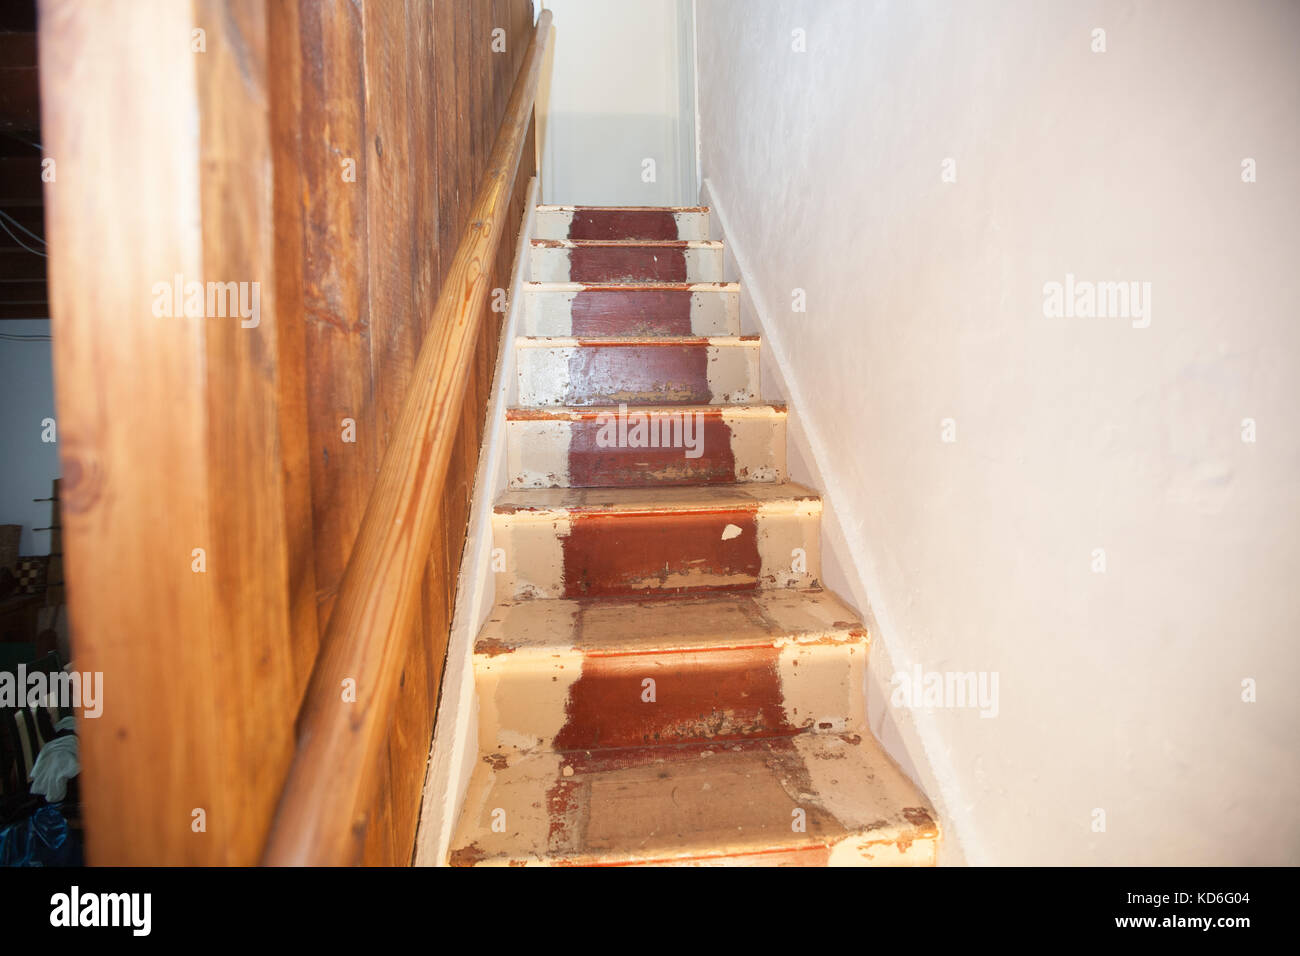 PROPERTY RELEASE,MY HOUSE STAIRS, Renovation,do It Stock ...